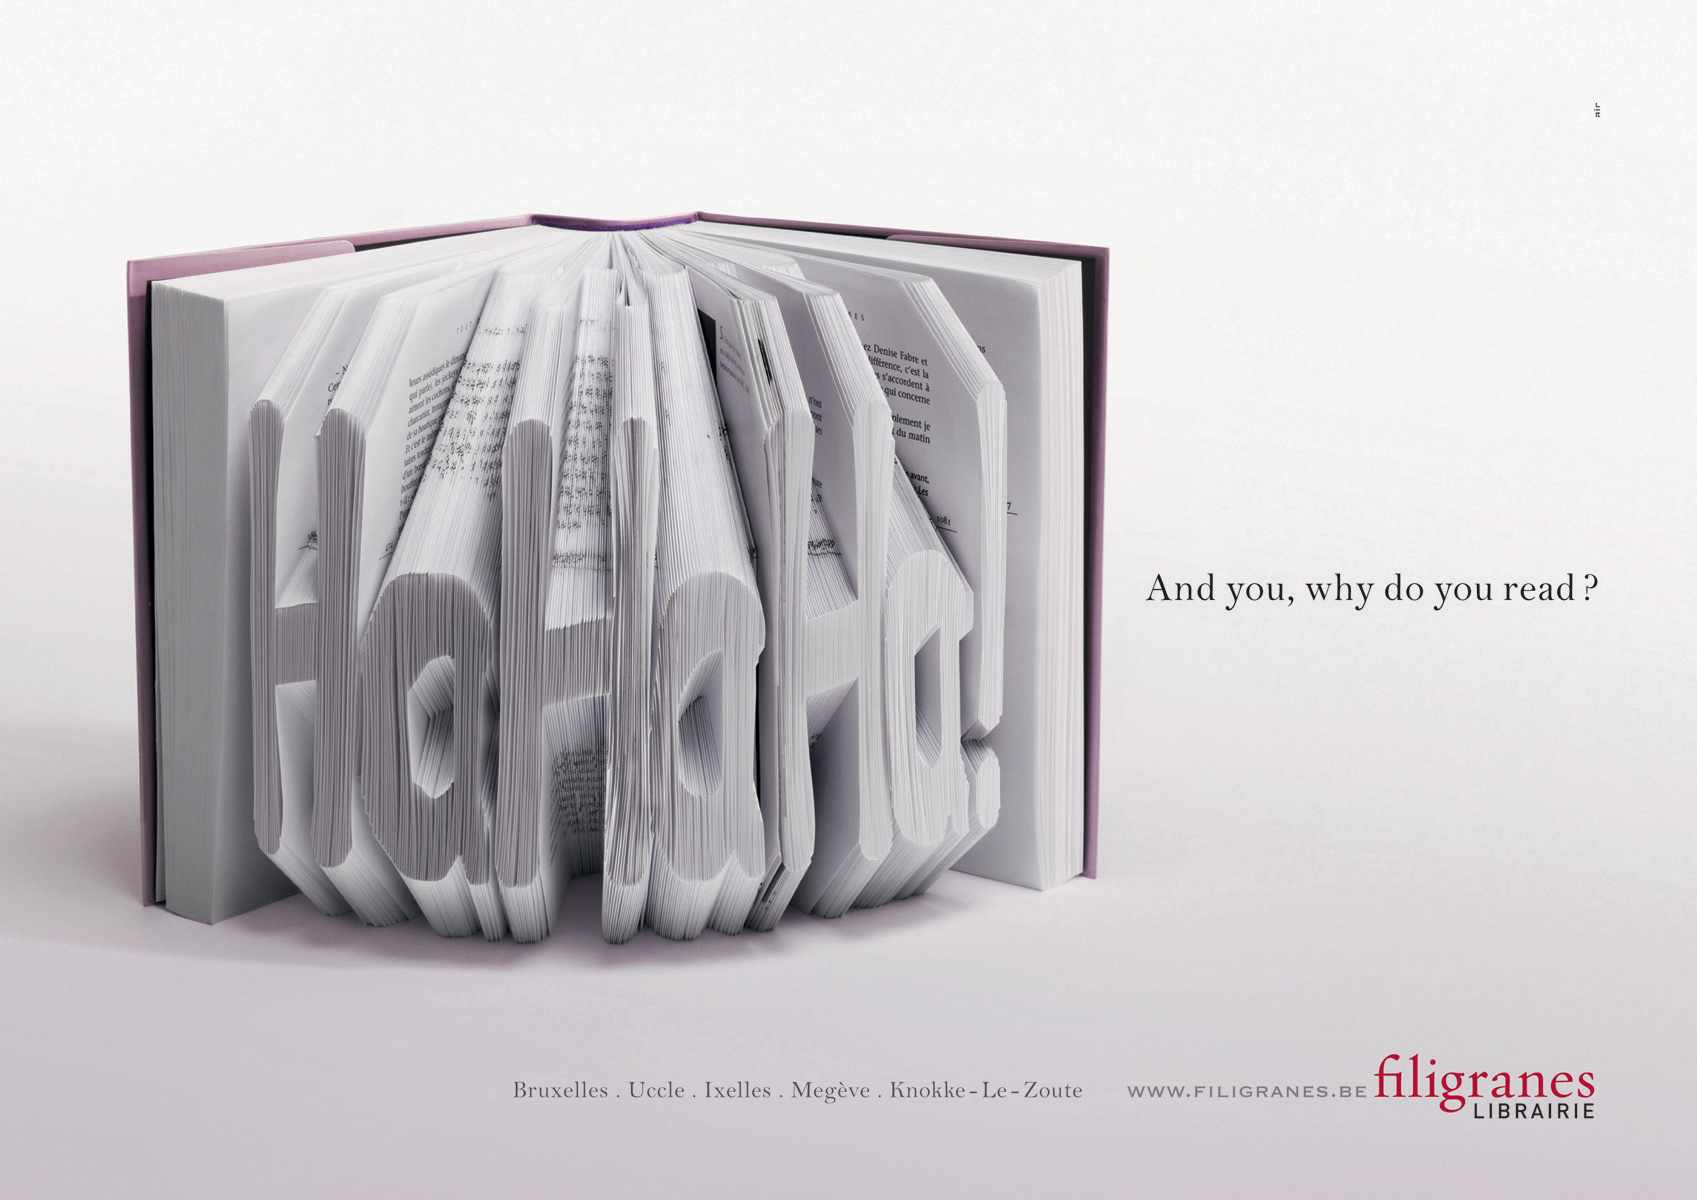 Ads for bookstores - Filigranes - Hahaha